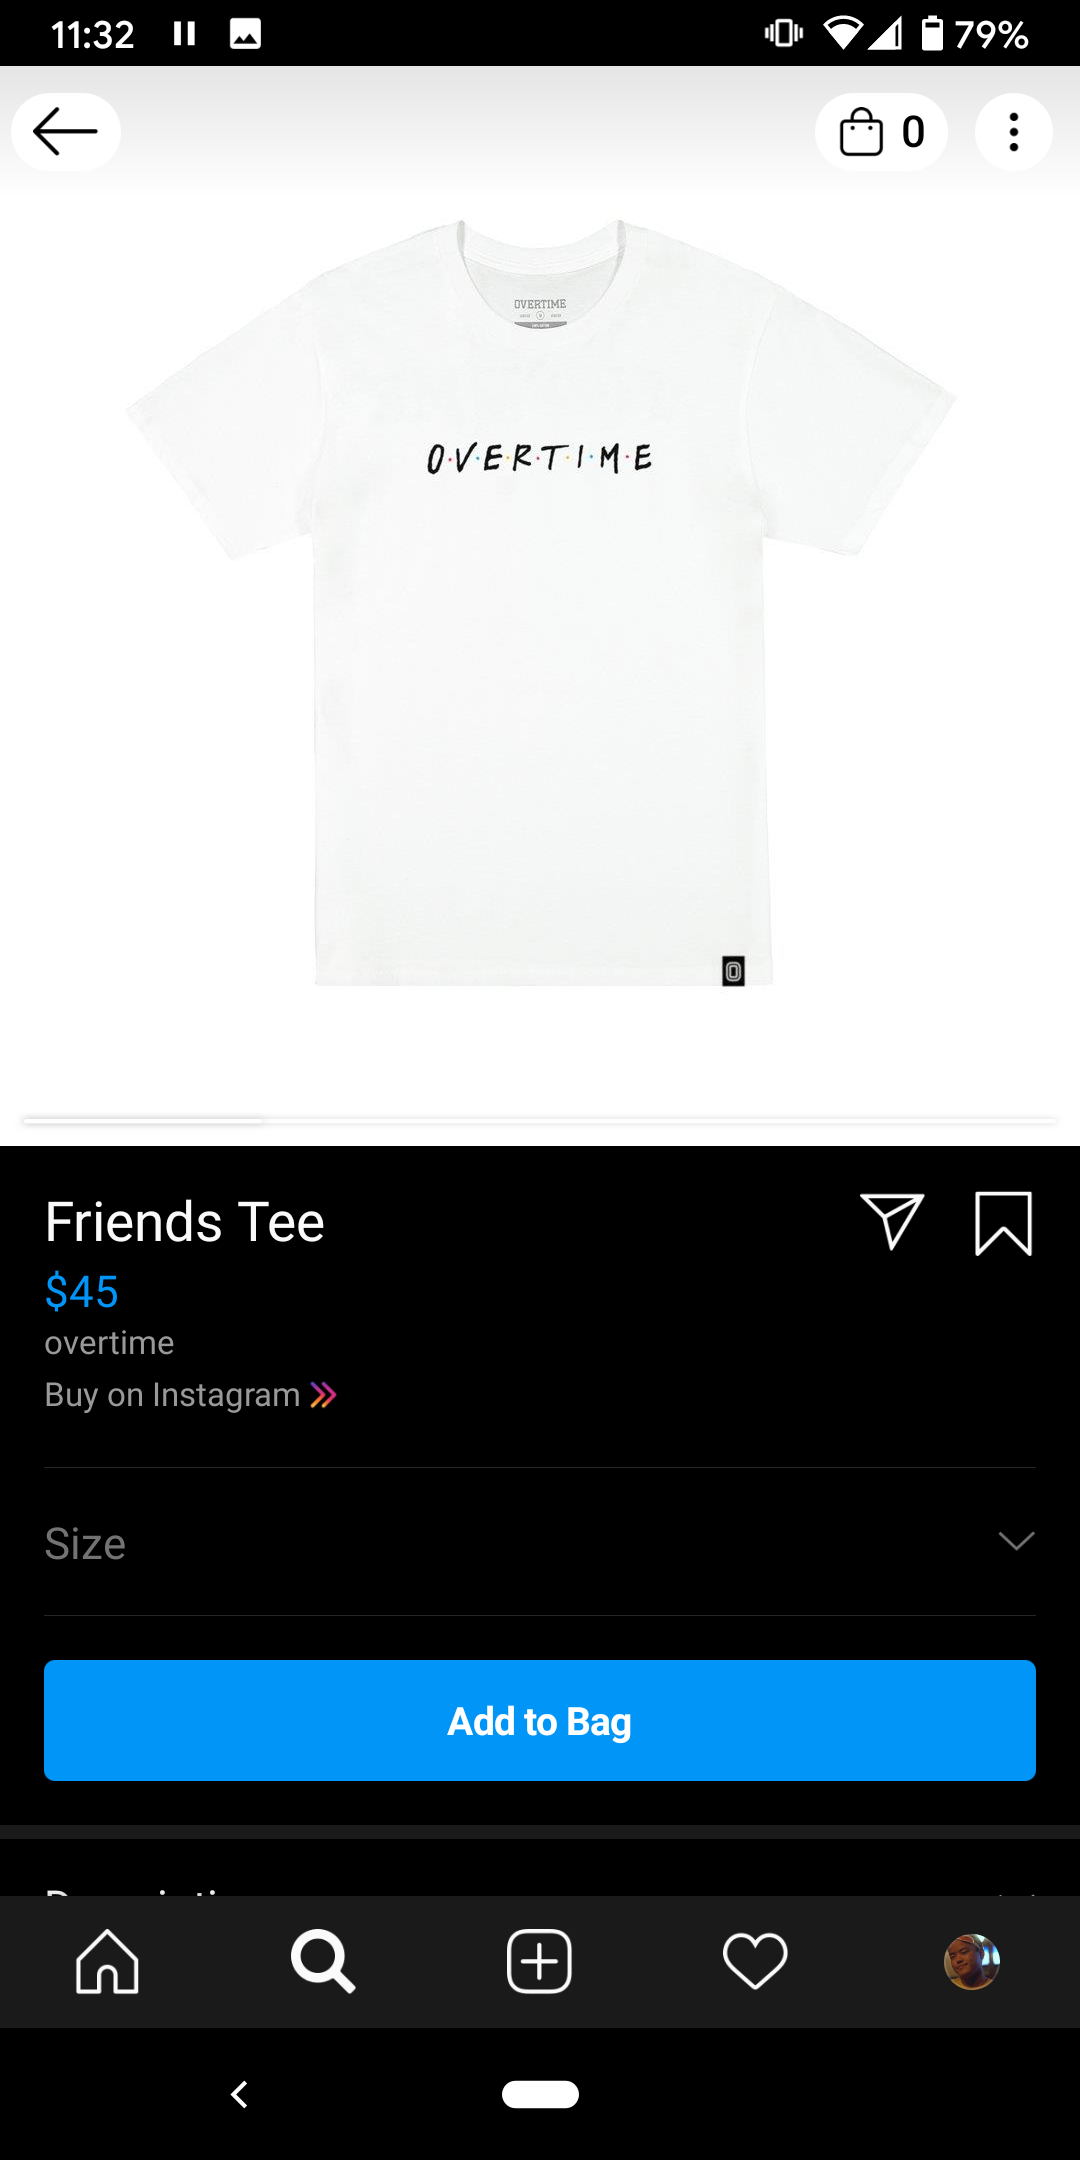 Instagram Shop UI- you can add directly to your IG bag